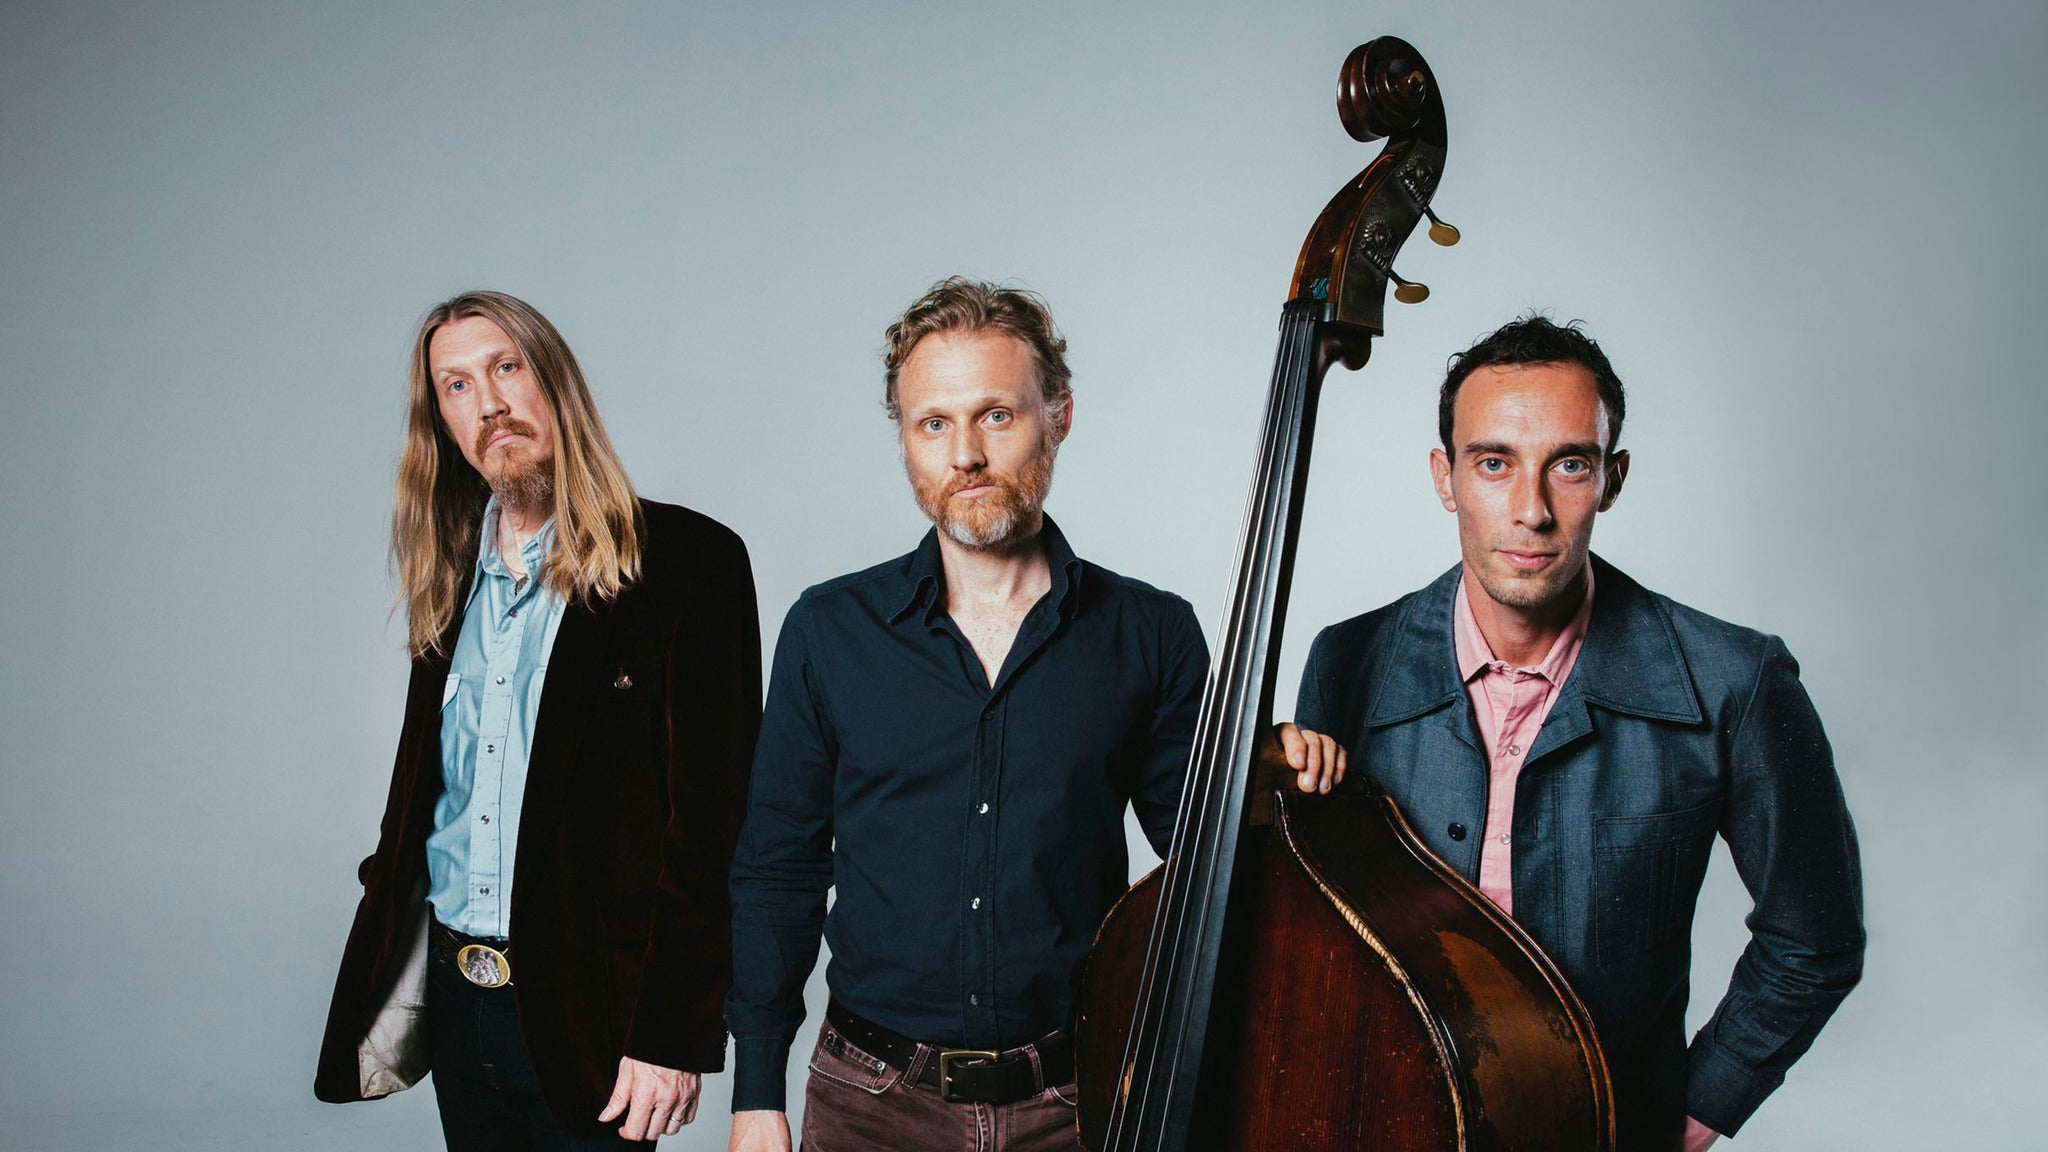 The Wood Brothers & Colter Wall at San Jose Civic